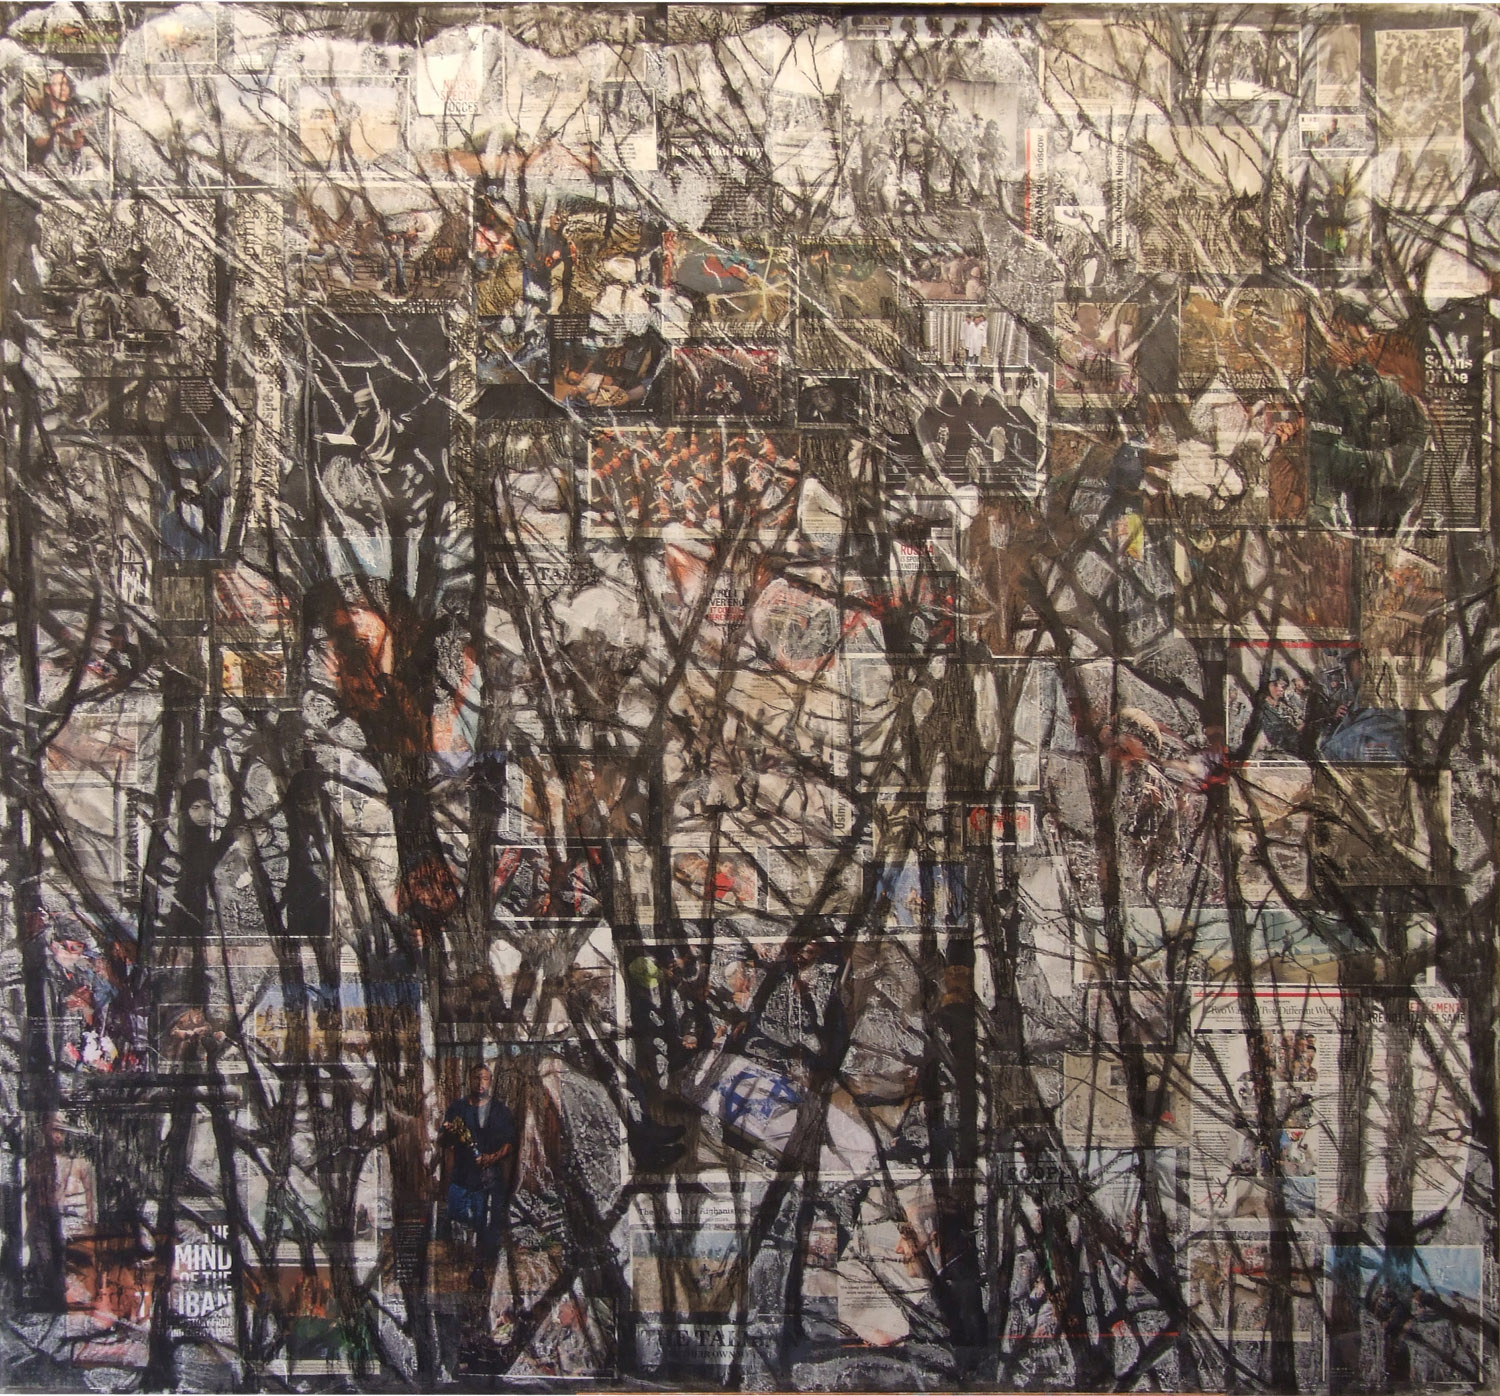 2ak(0)-Hedge-acrylic, charcoal, conte, print media collage on canvas, 60x55 in, 2008.jpg